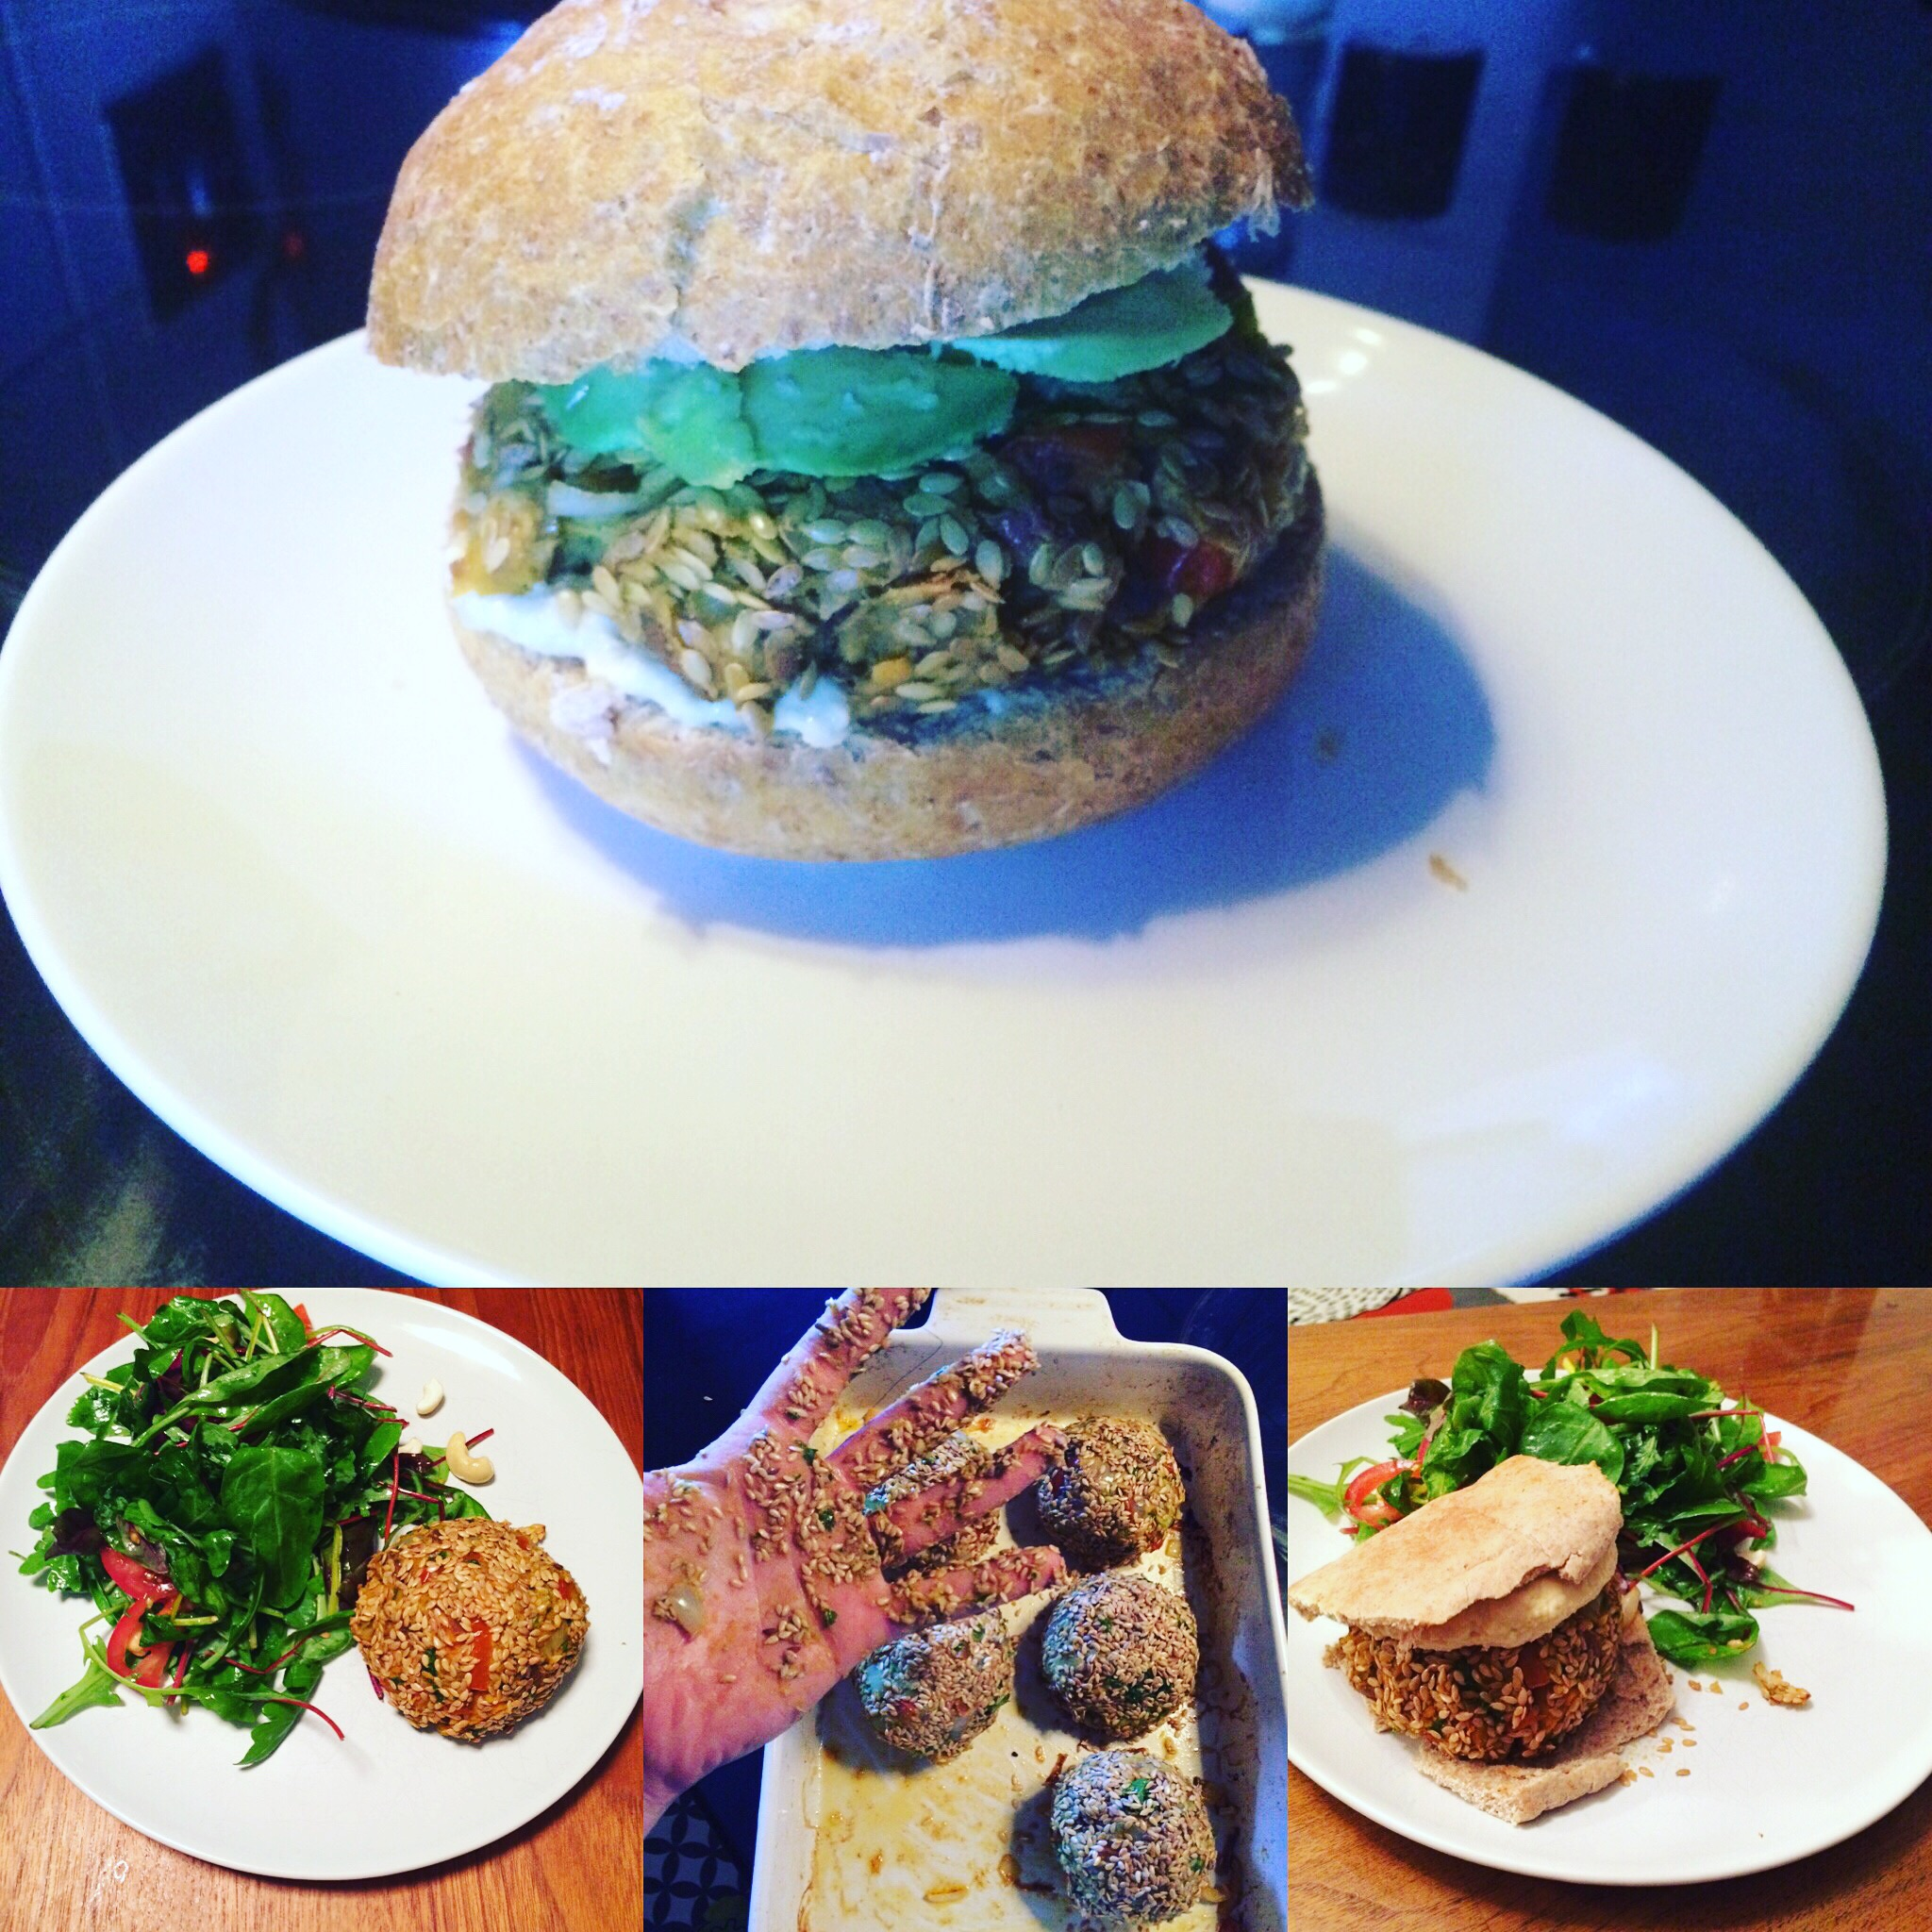 Here we have sweet potato & red pepper burgers, infused with sweet paprika & coated in linseed - taken from the 5 step framework outlined above